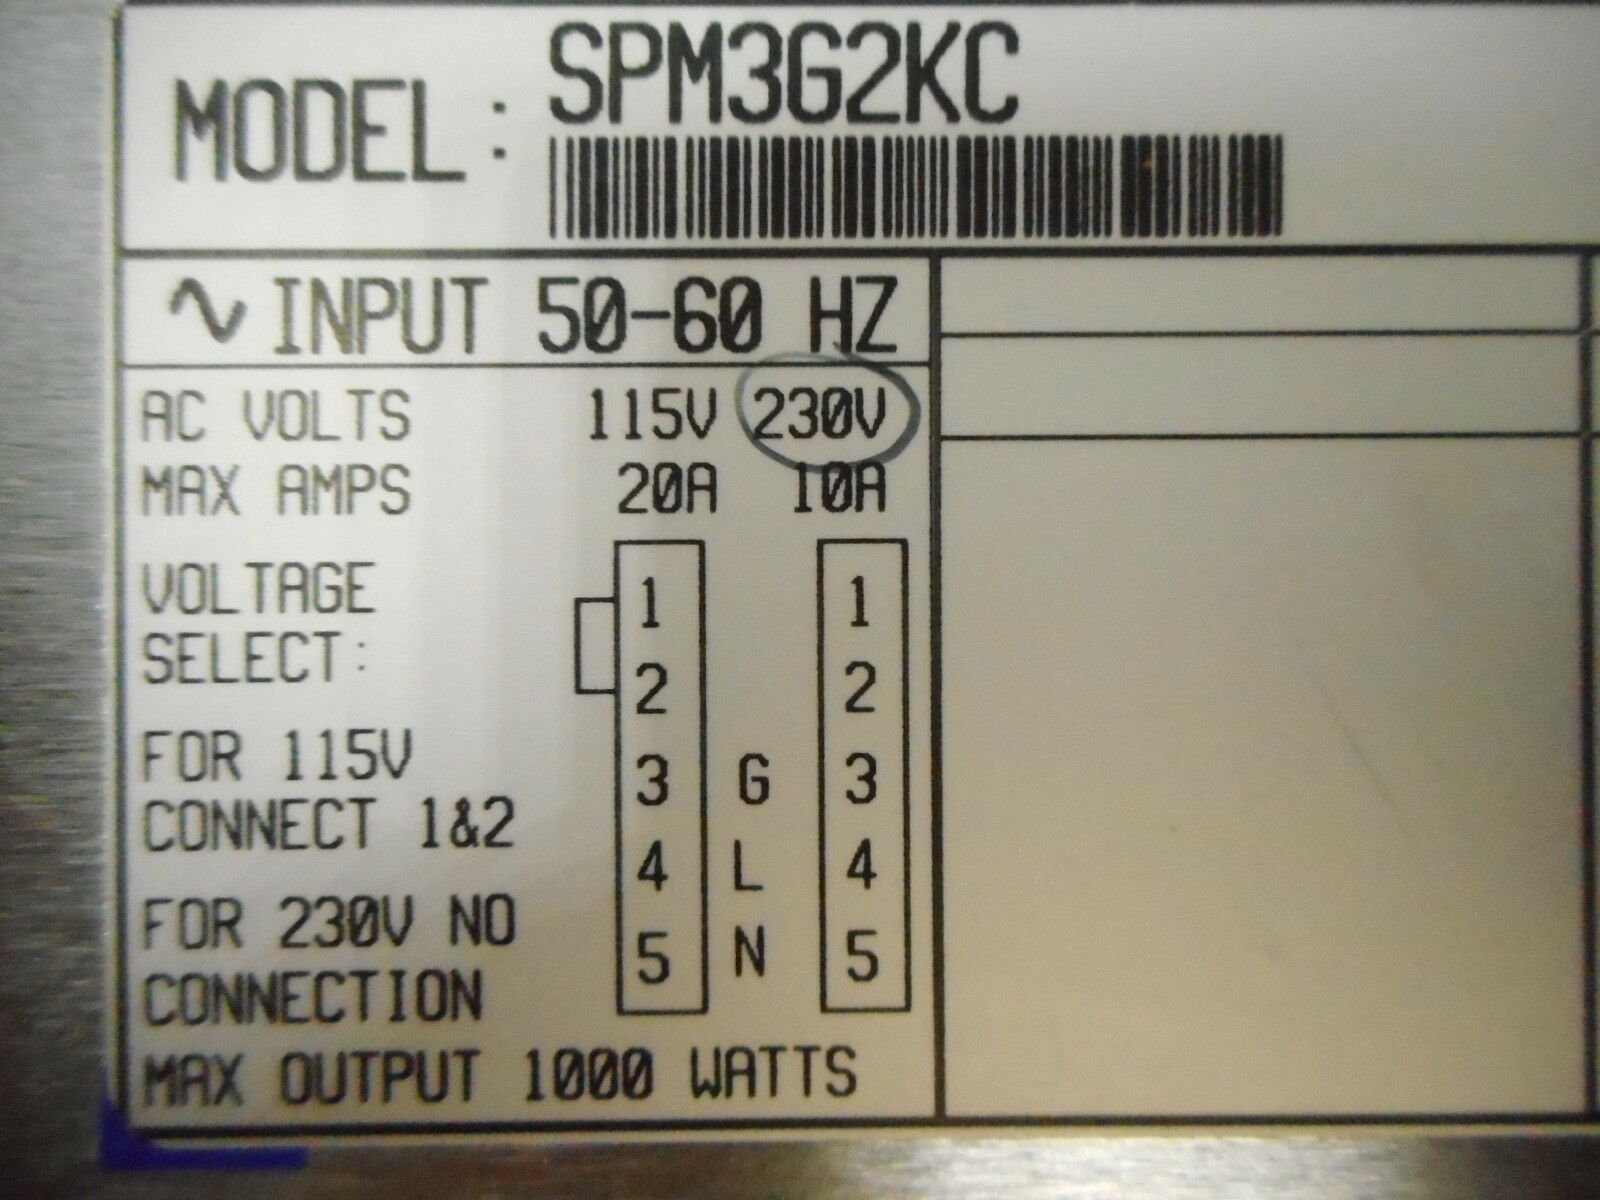 Power-One SPM362KC Power Supply 1kW Used Working